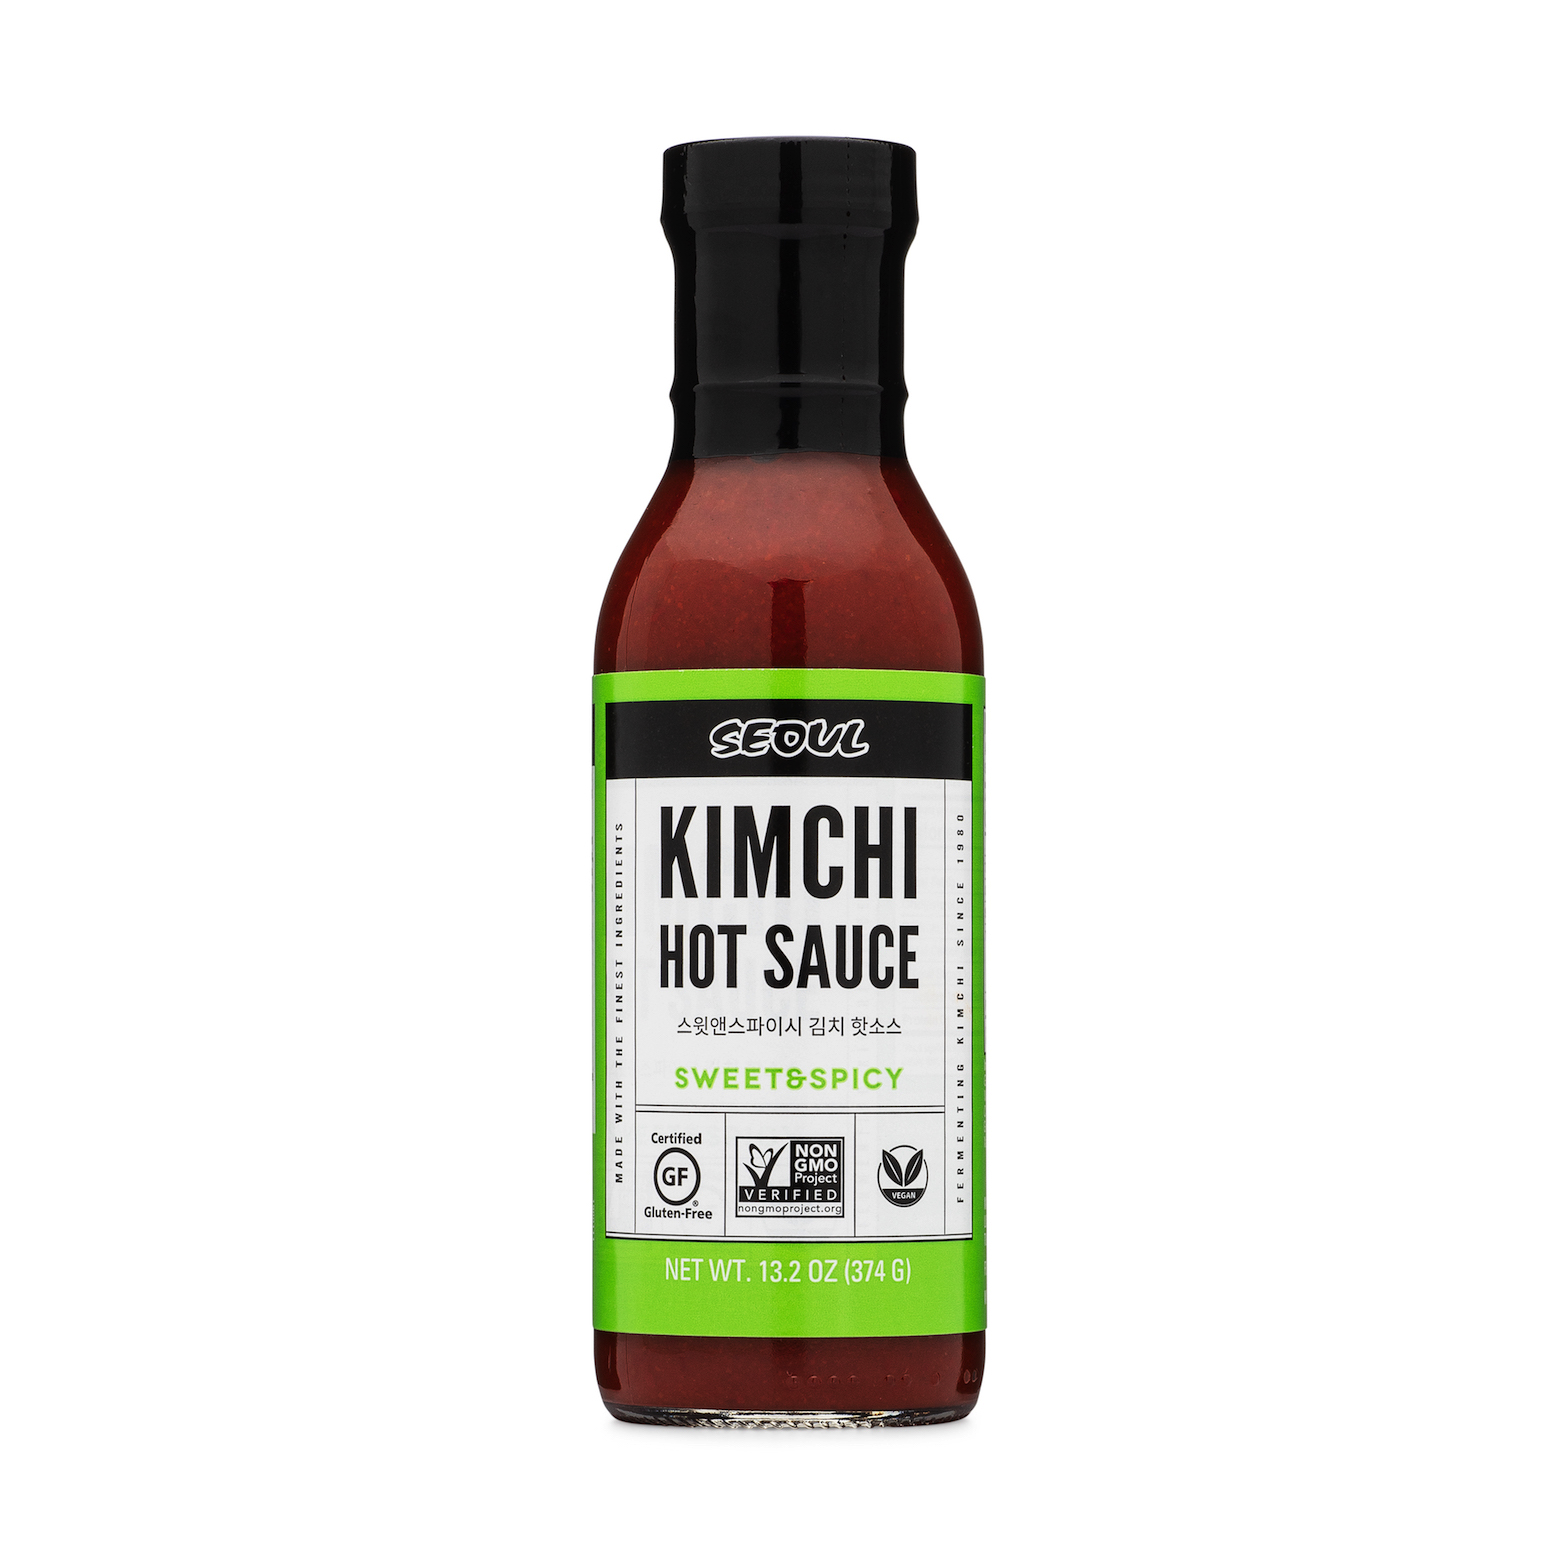 sweet and spicy kimchi hot sauce